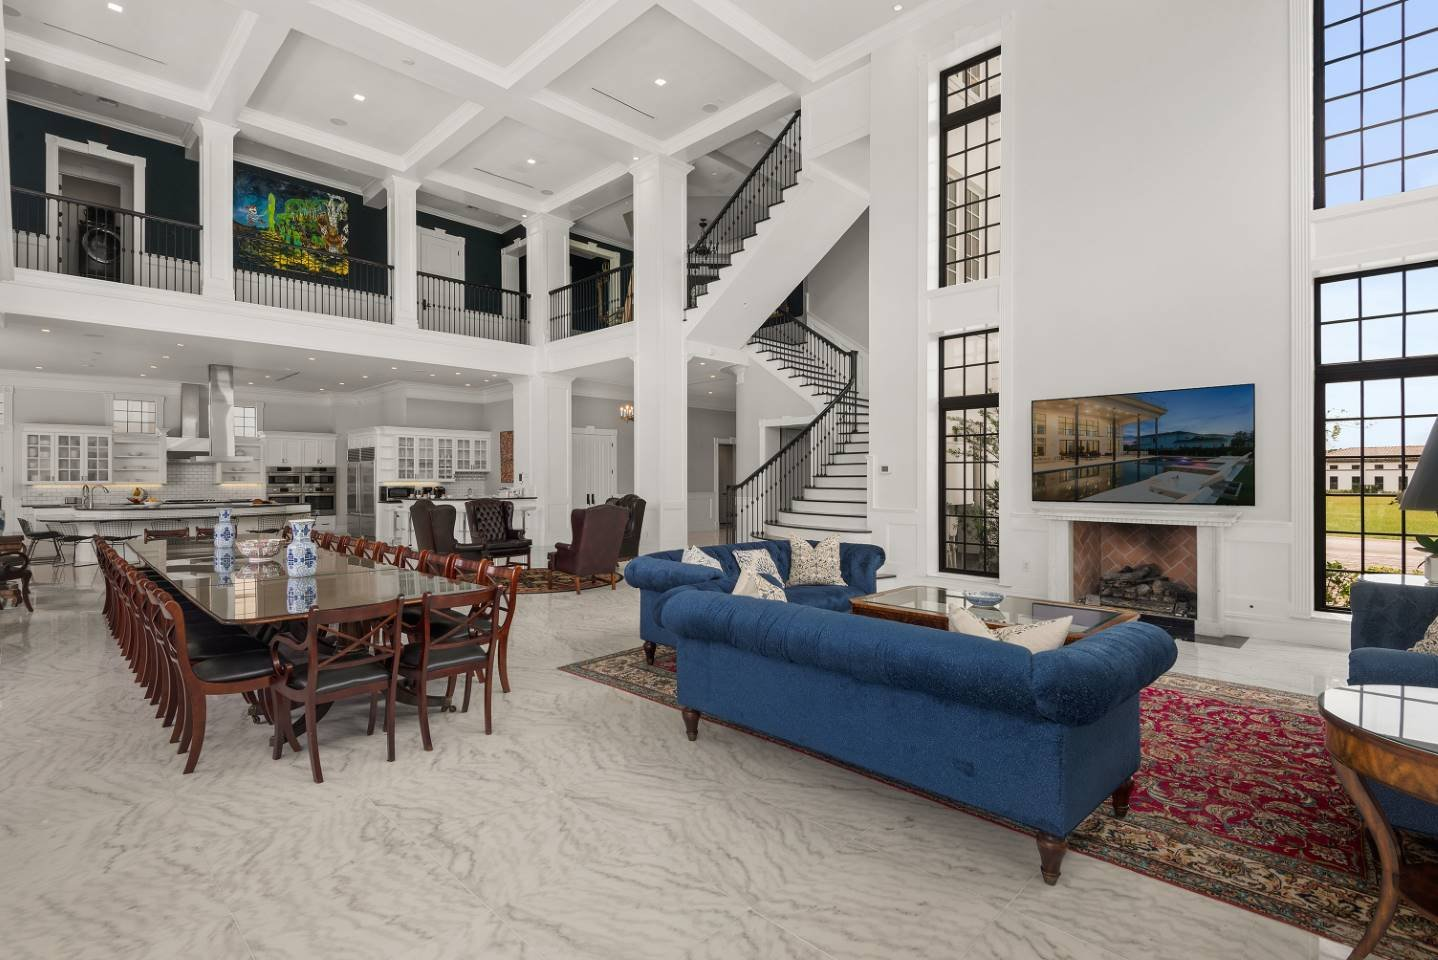 The Eclectic Colonial Estate-213671